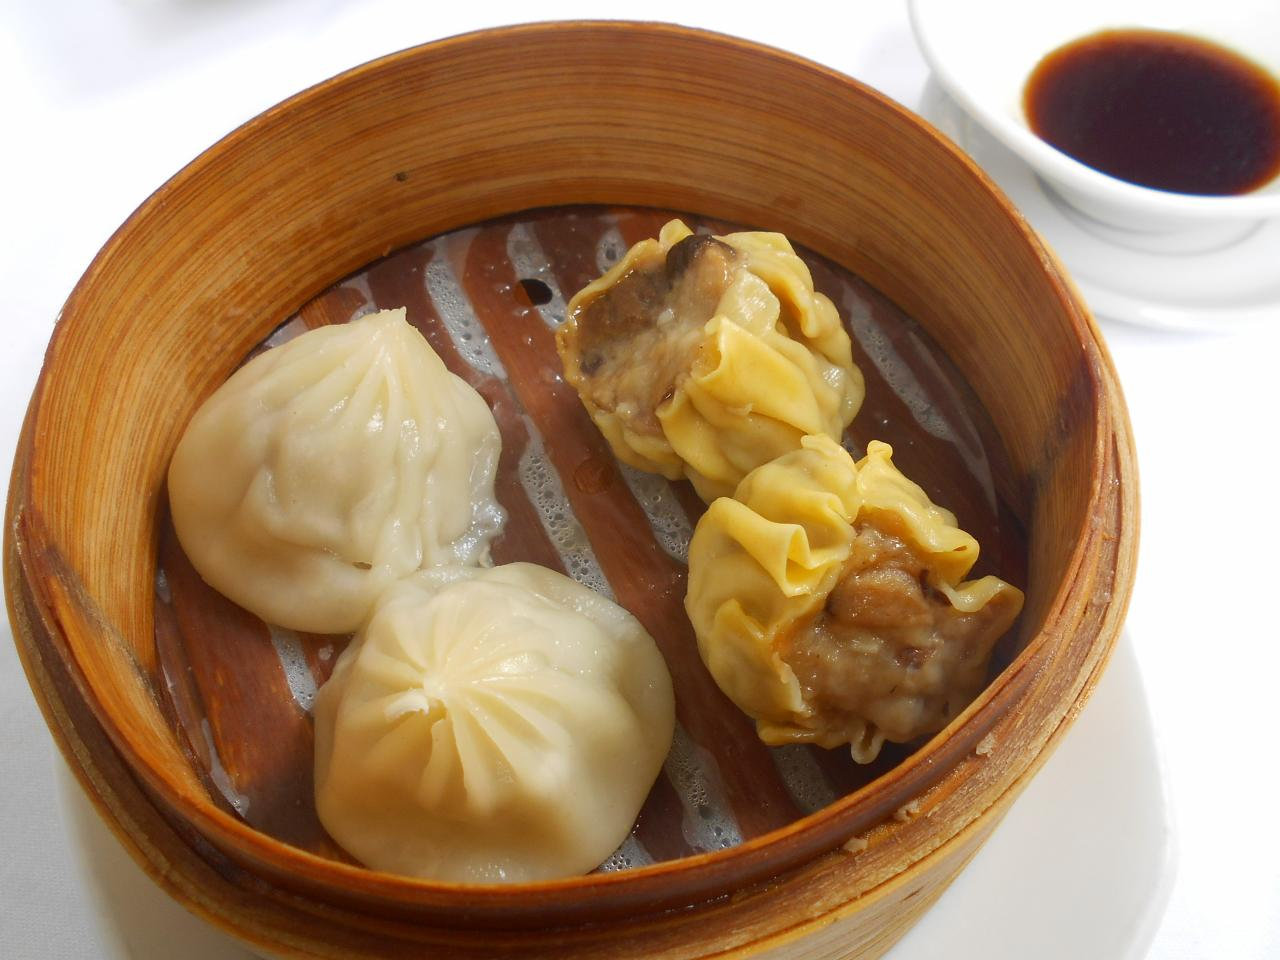 The two steamed dim-sum